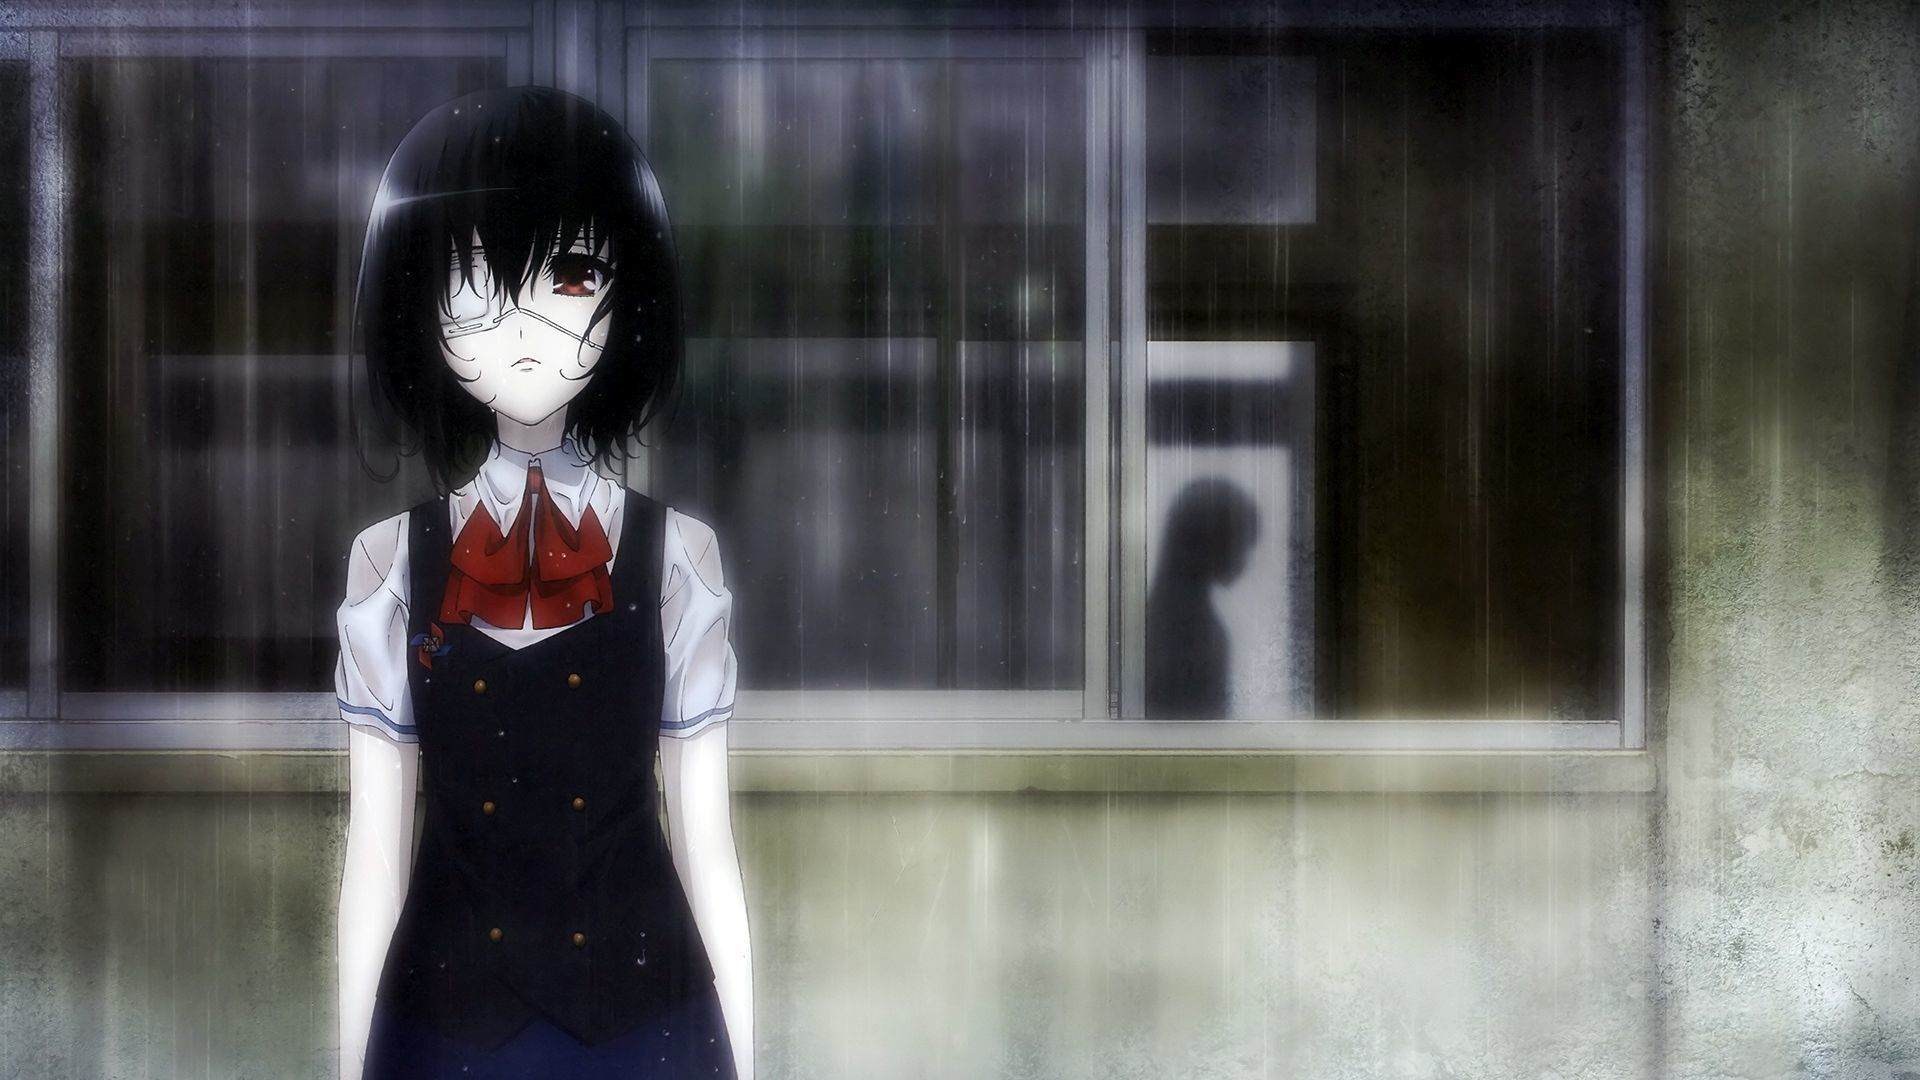 mei_misaki_another_anime_series_characters_1920x1080 (With